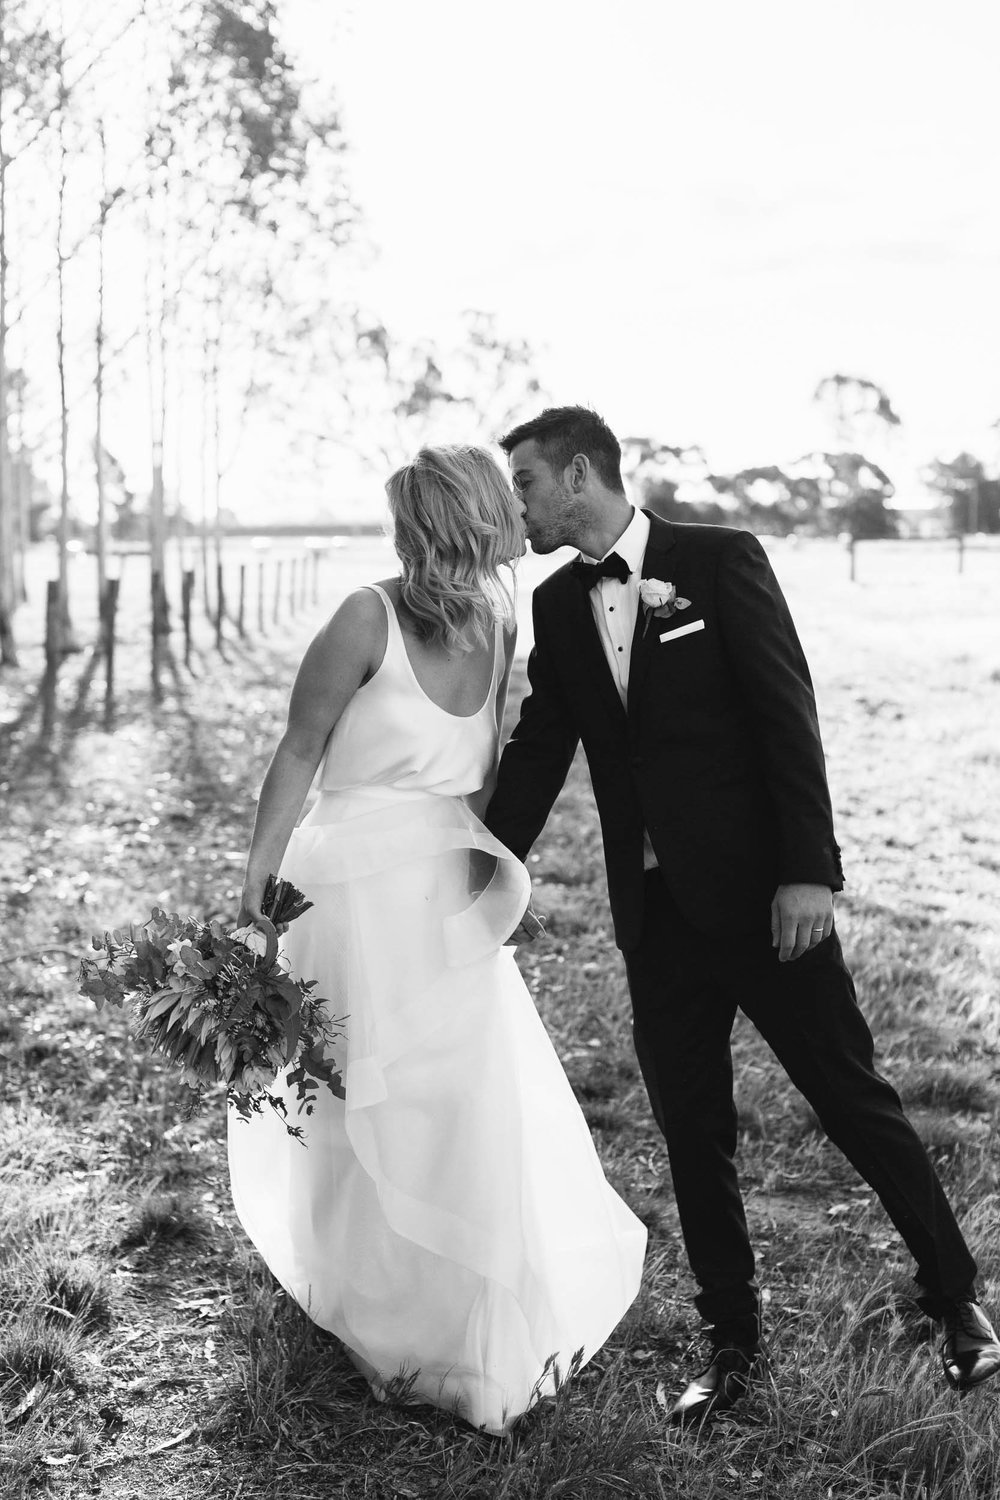 Kas-Richards-Wedding-Photographer-Country-Winery-Wedding-One-Day-Bridal-Gown-62.jpg